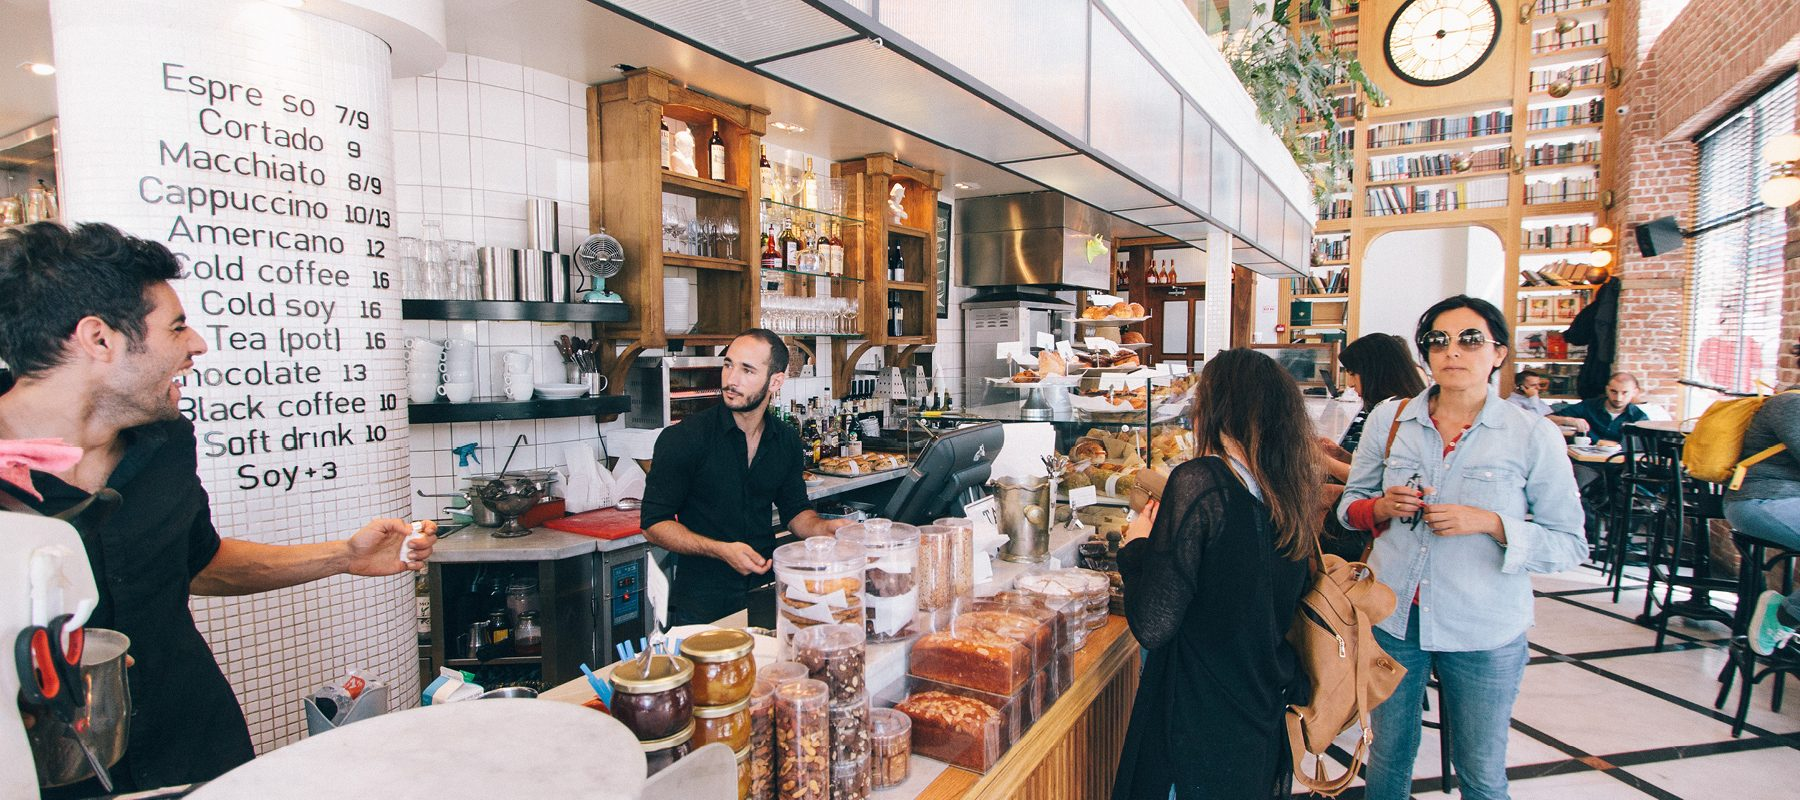 How to attract more customers to your cafe or restaurant